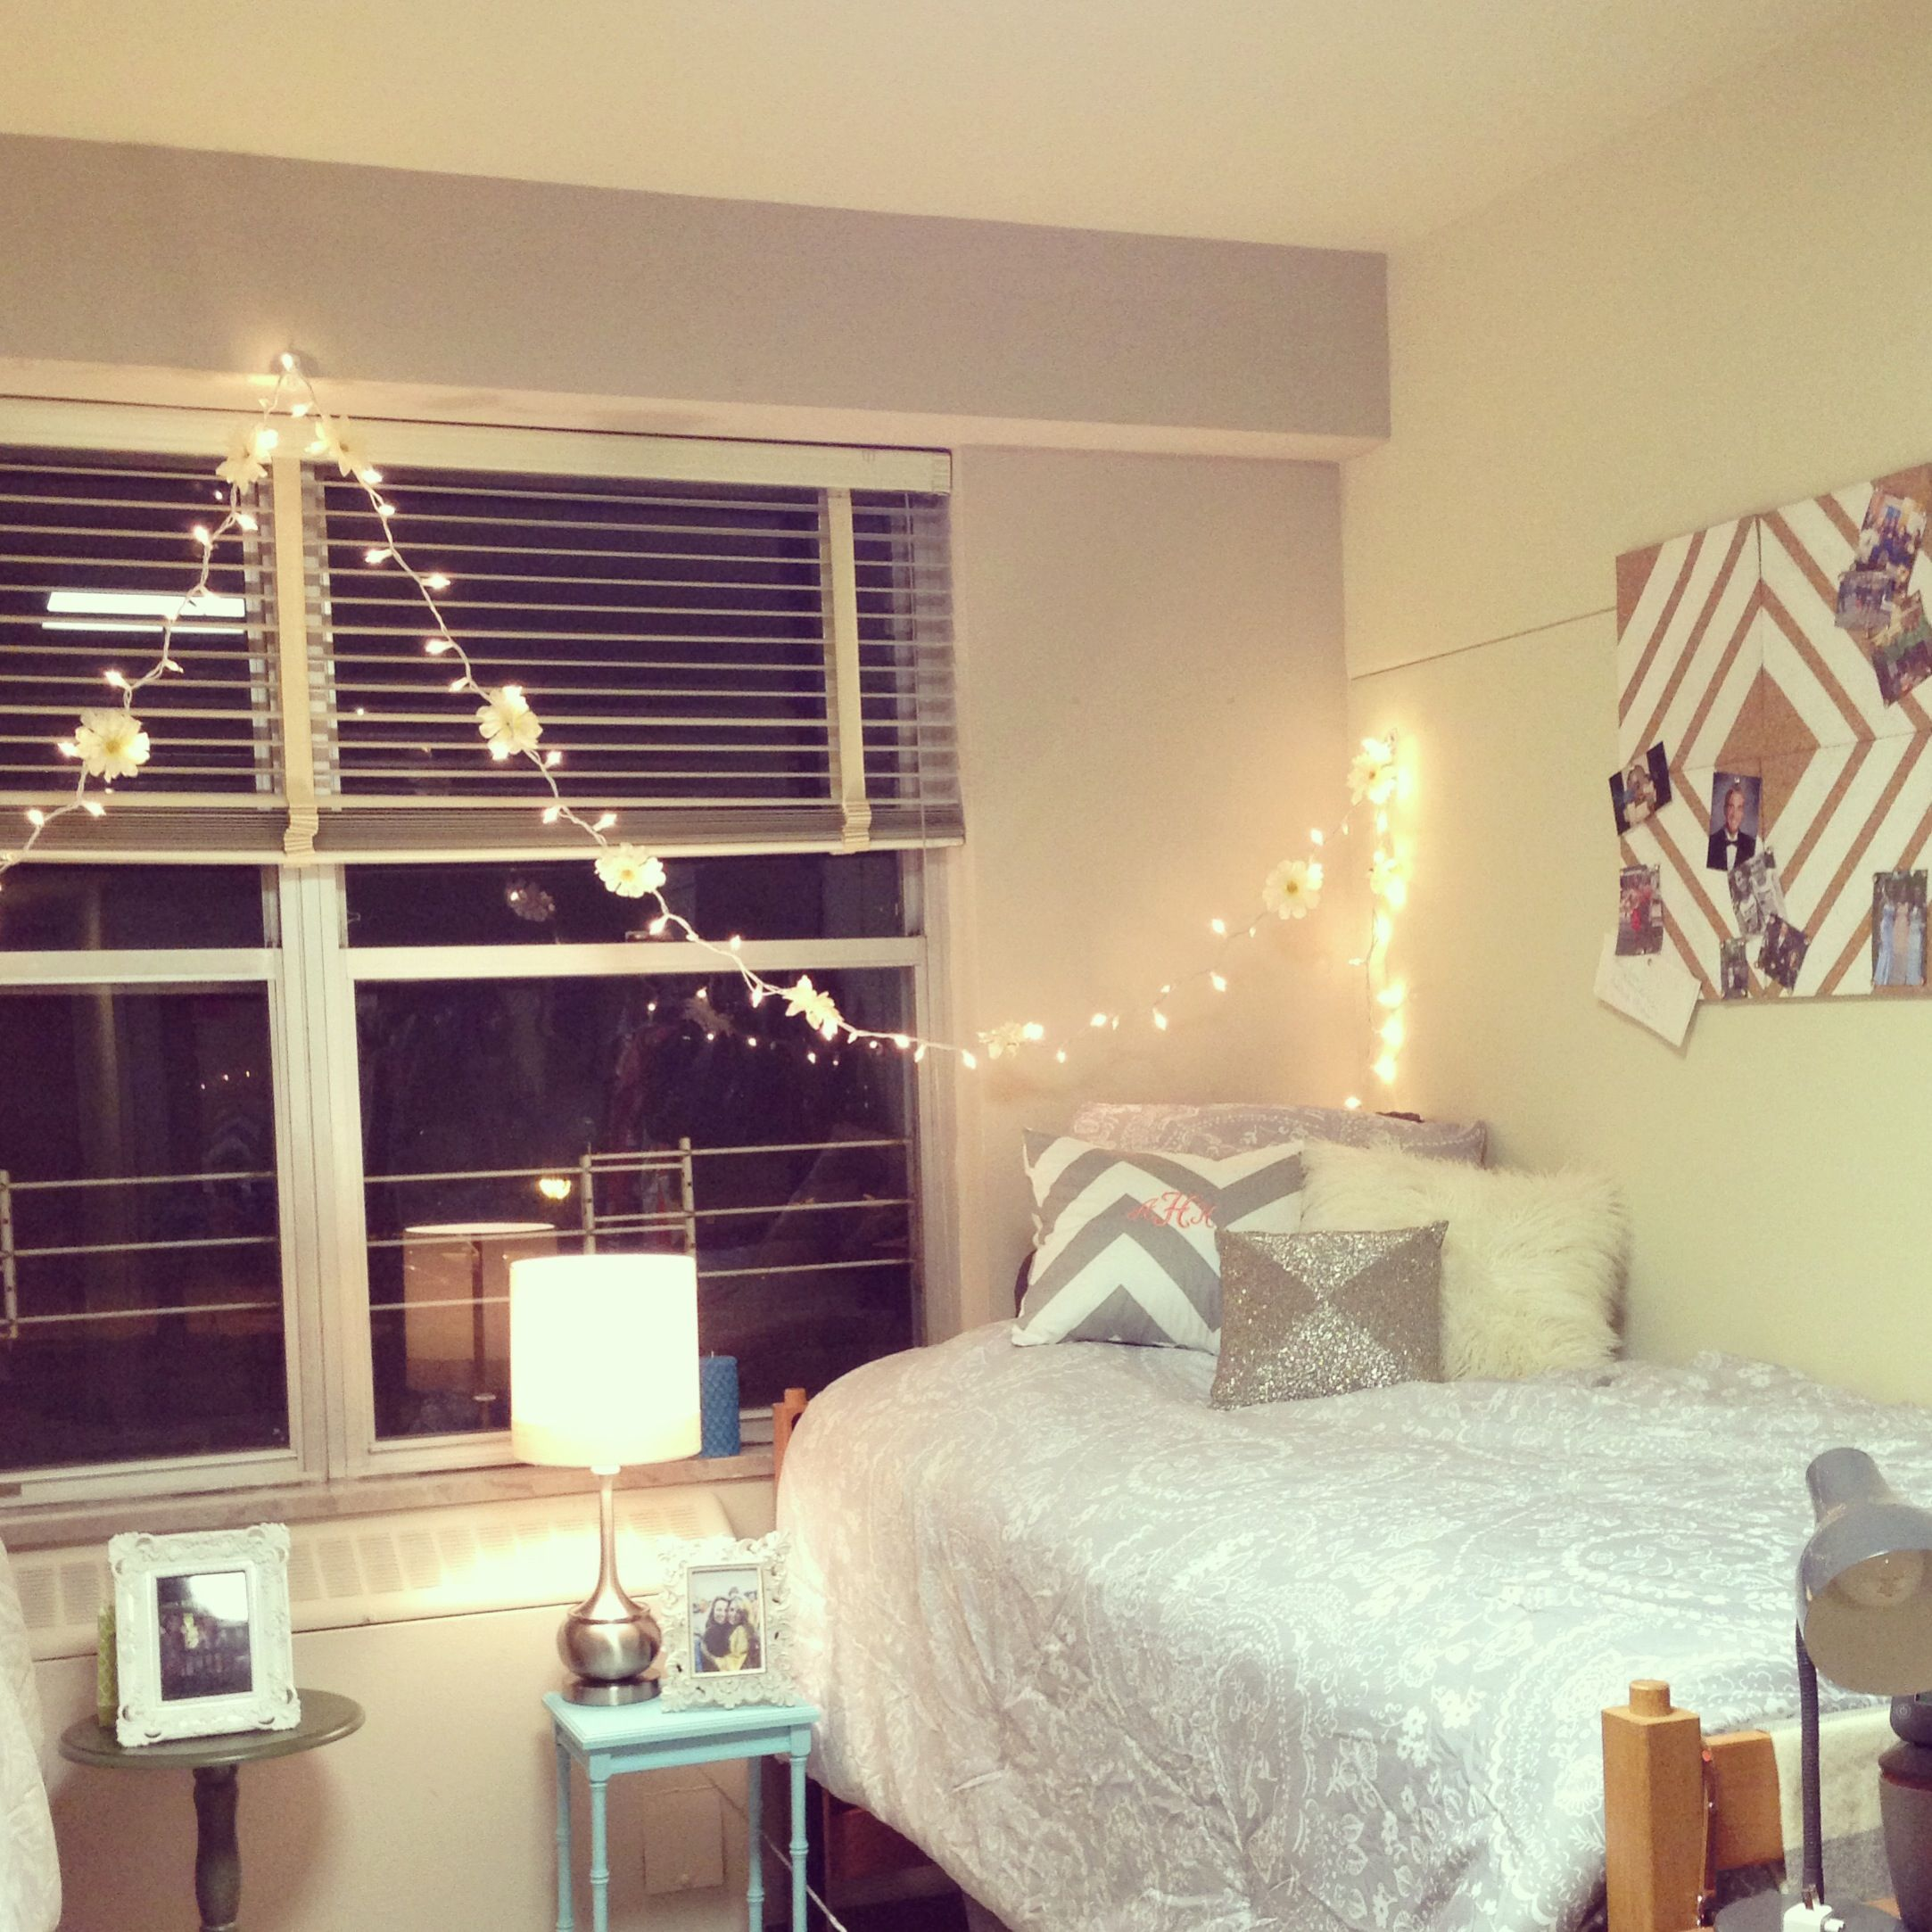 Dorm room | Dorm room decor ideas | Pinterest | Dorm room, Dorm and ...